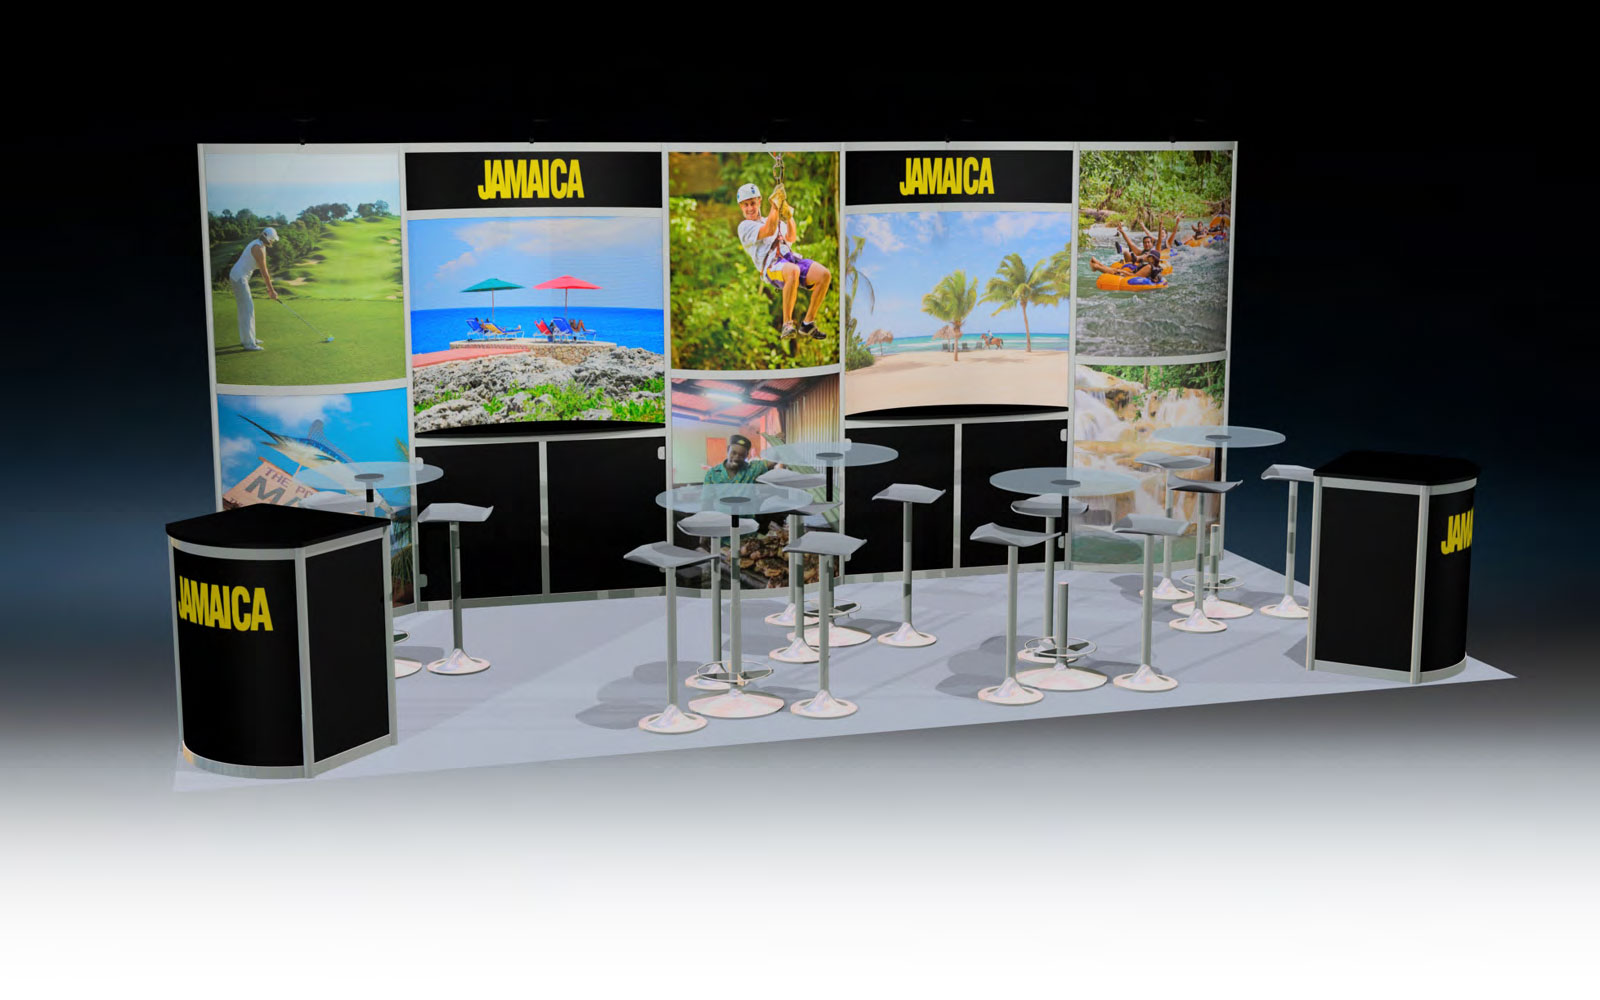 Jamaica Exhibit